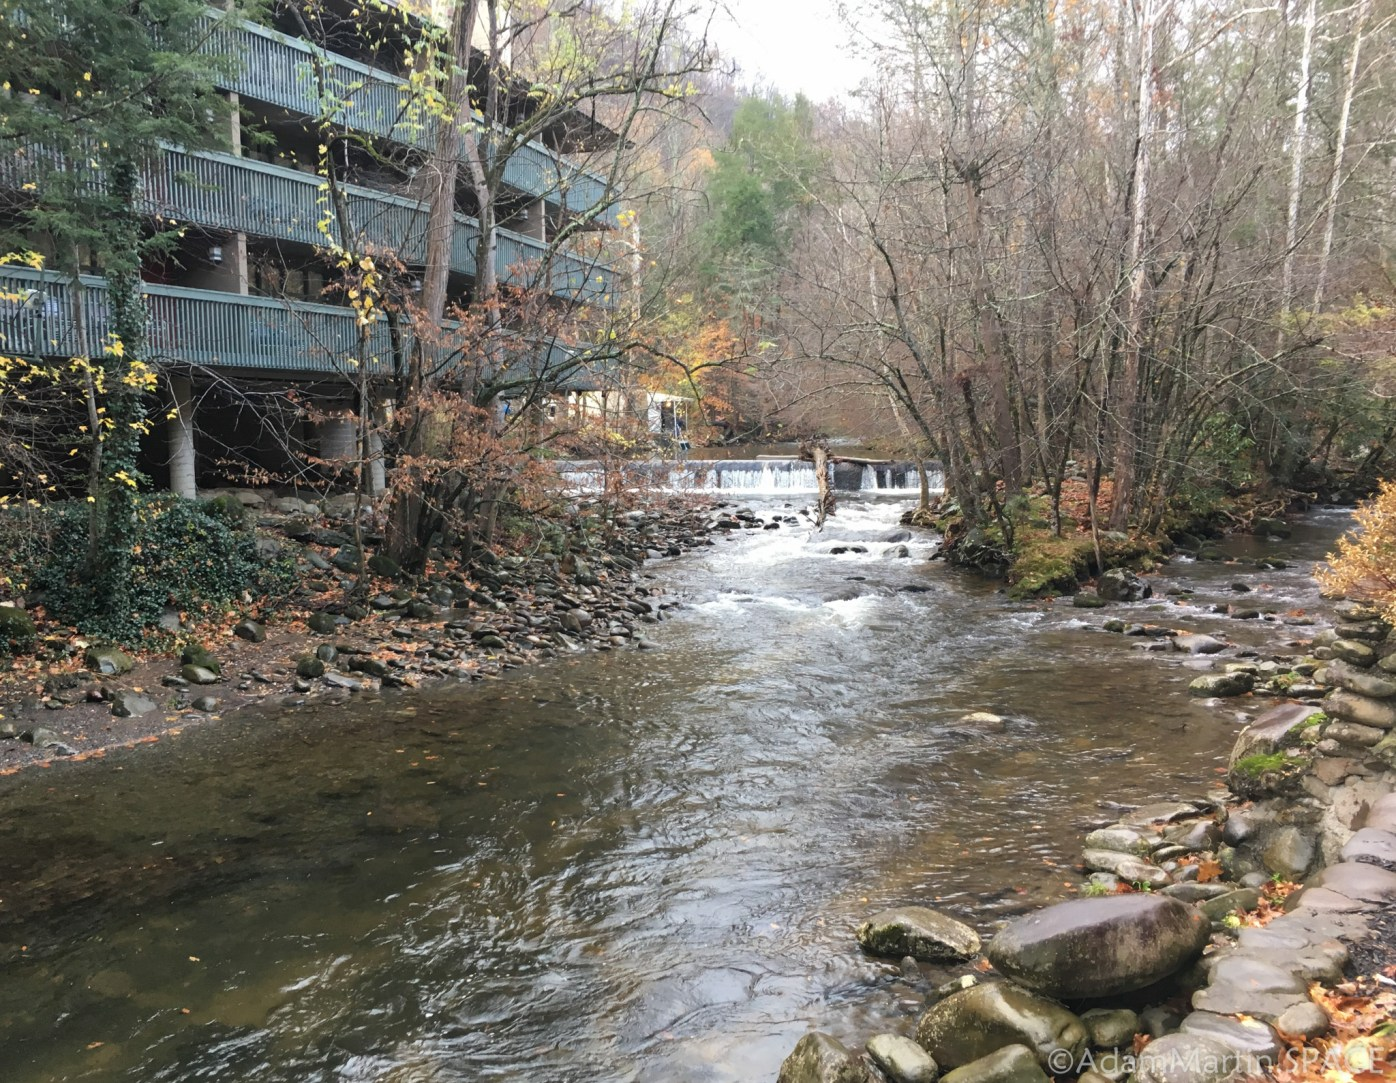 Gatlinburg - Small falls/rapids behind hotel